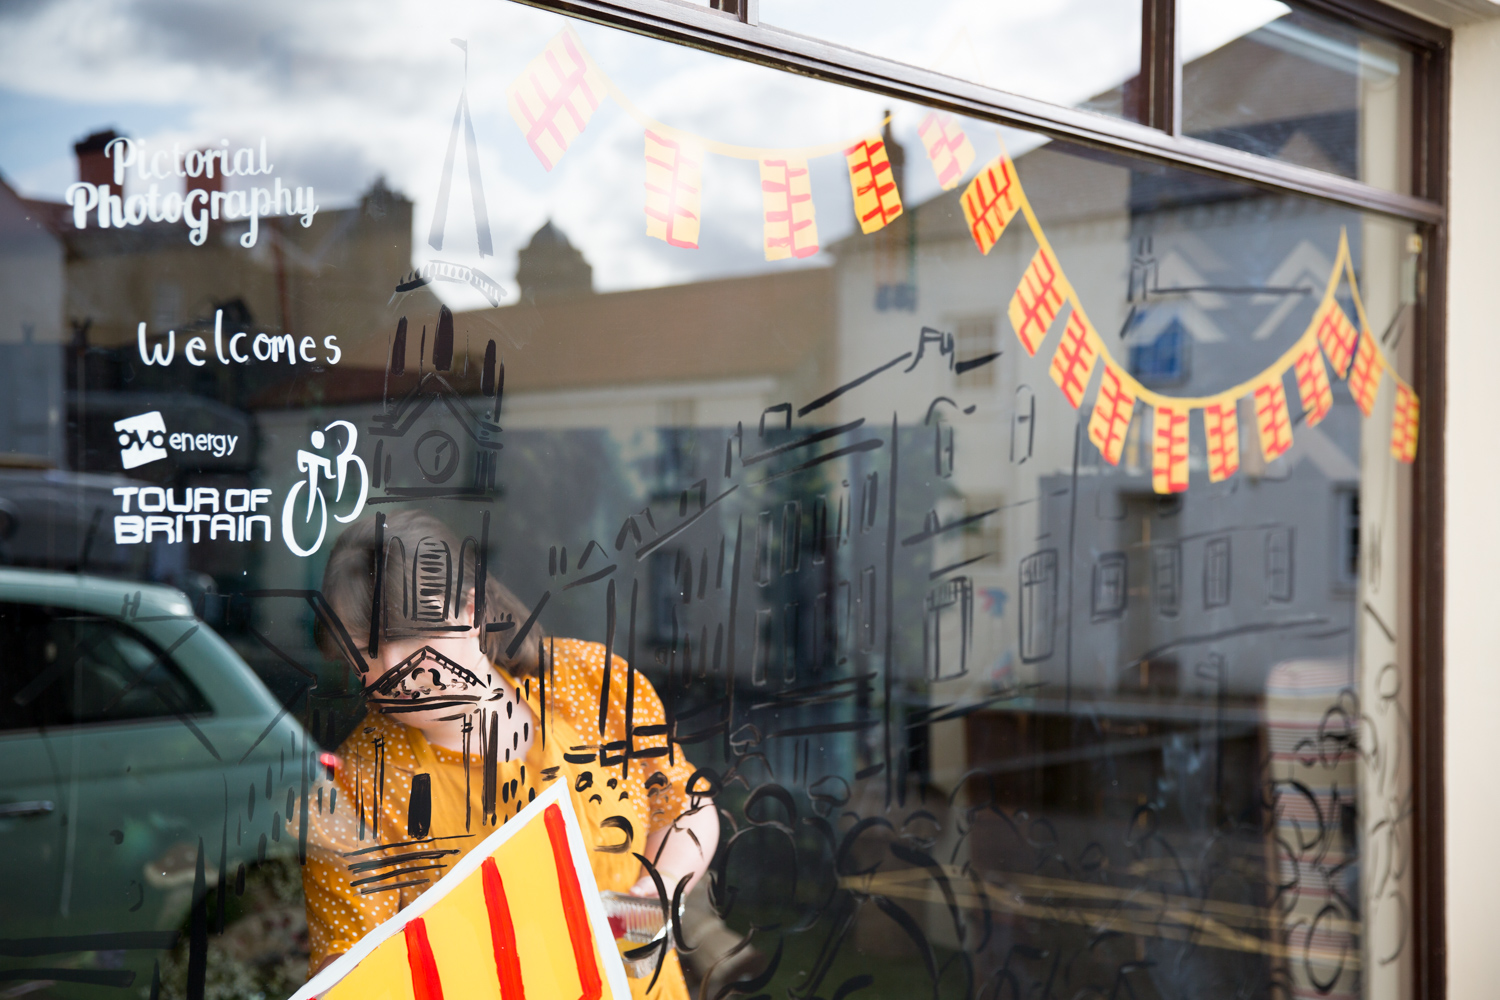 Katie_Draws_Pictorial_Photography_Chappell_Tour_of_Britian_window-painting-live-illustration-photography-graphic-mural-presentation-H45A6278.jpg